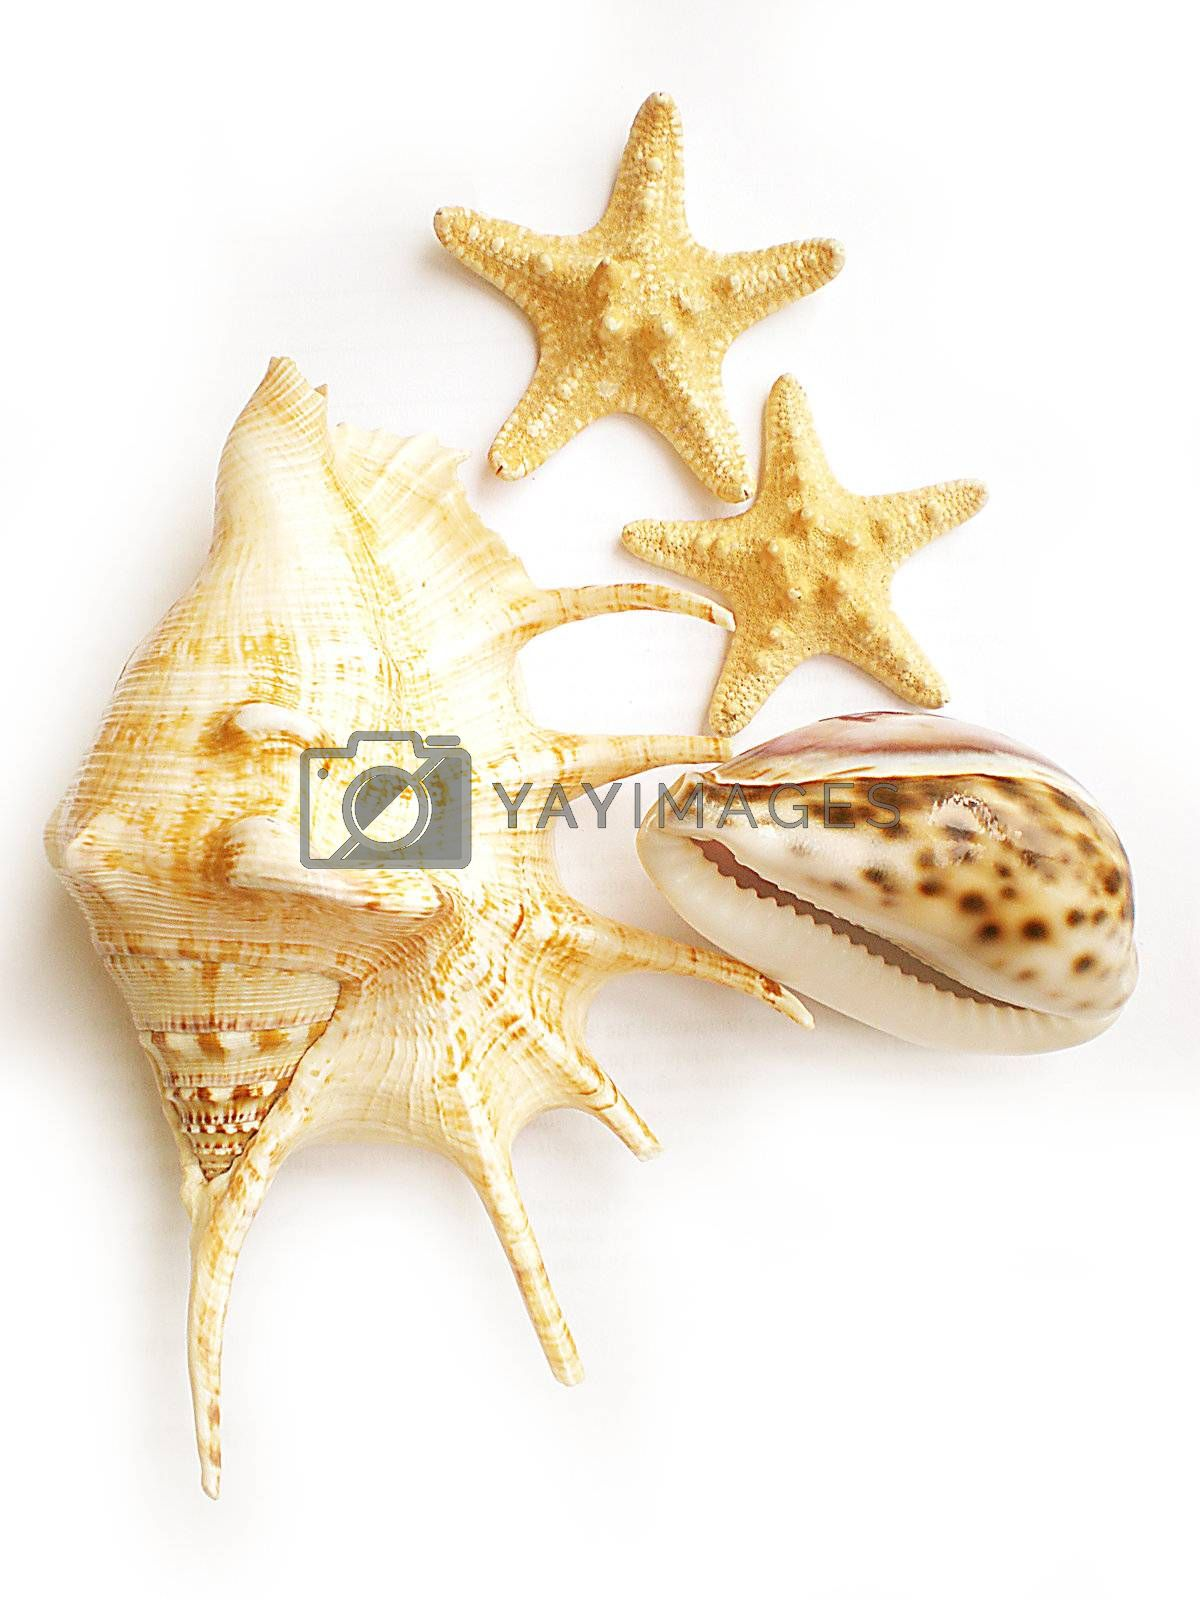 Royalty free image of shells by Dessie_bg